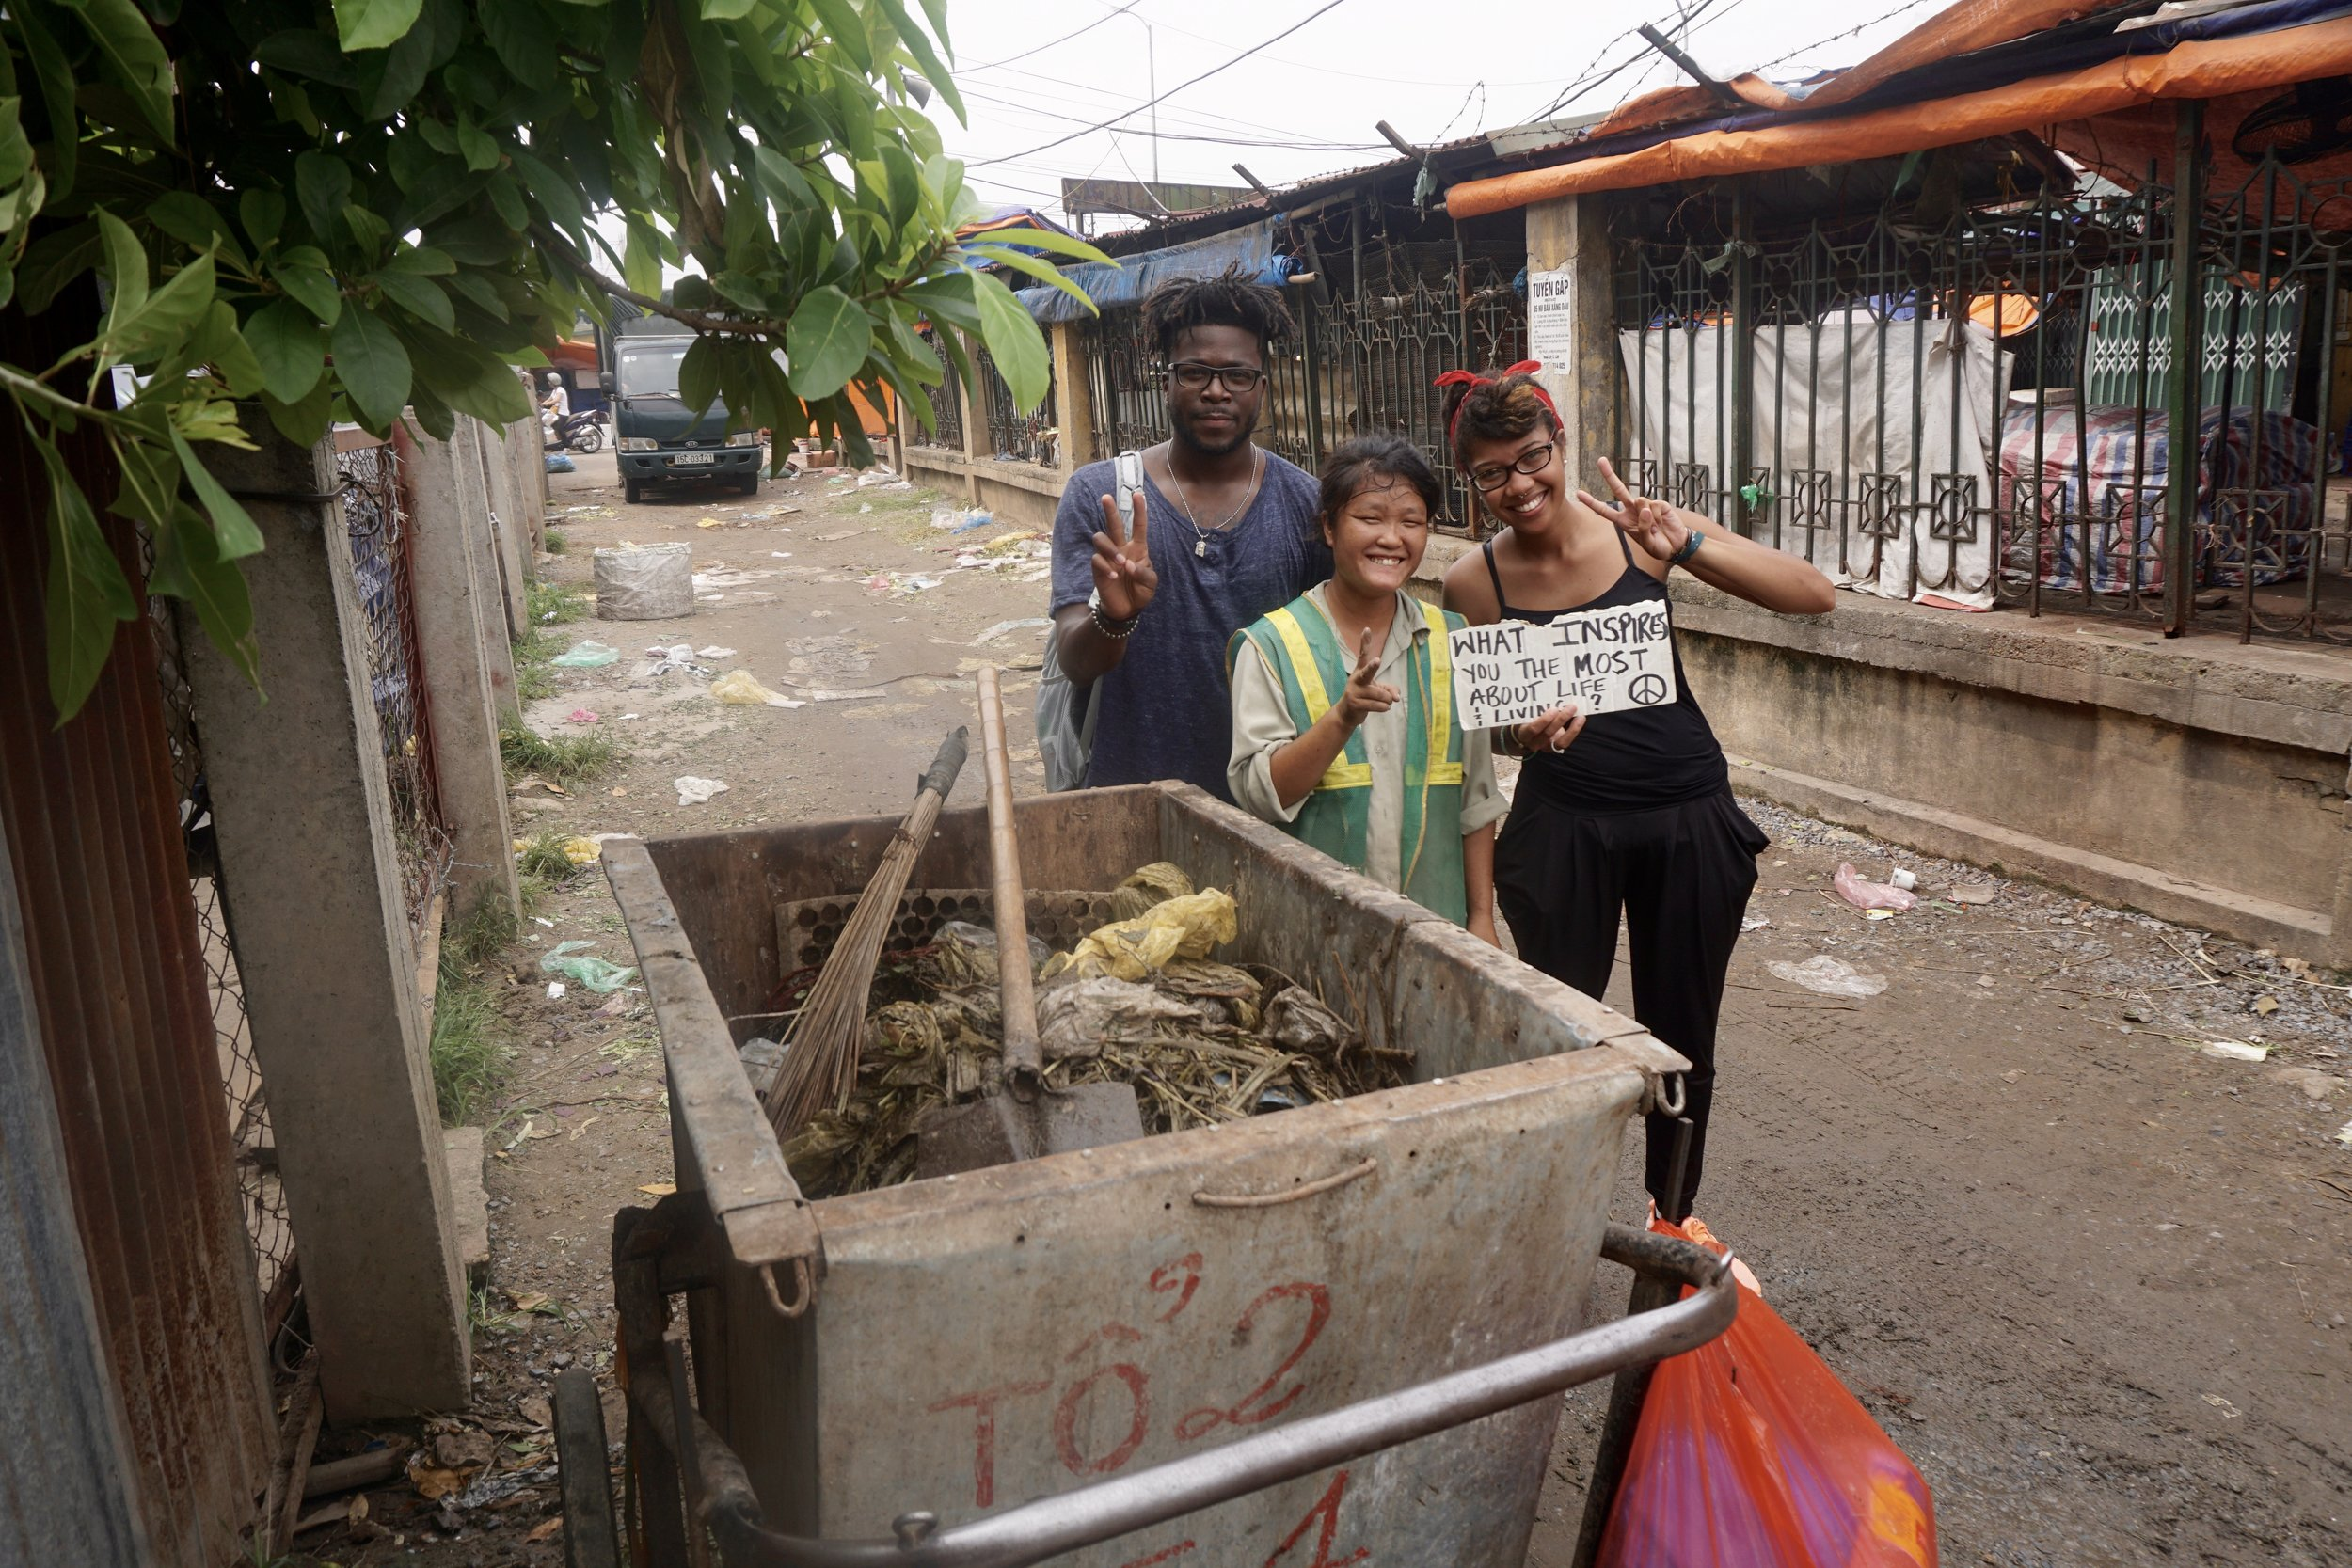 """From : Vietnam   Interview Location  : Hanoi, Vietnam  """" It's my own sweat from my work that makes me happy.I don't really stay up at night,I sleep like a dead person. Sometimes I work this job at night and sometimes in the during day. I also have another day job,at night I go to the market to pick up recycle bins.It keeps me busy and make a little more money... I don't really know what to advise cause I'm uneducated..."""""""